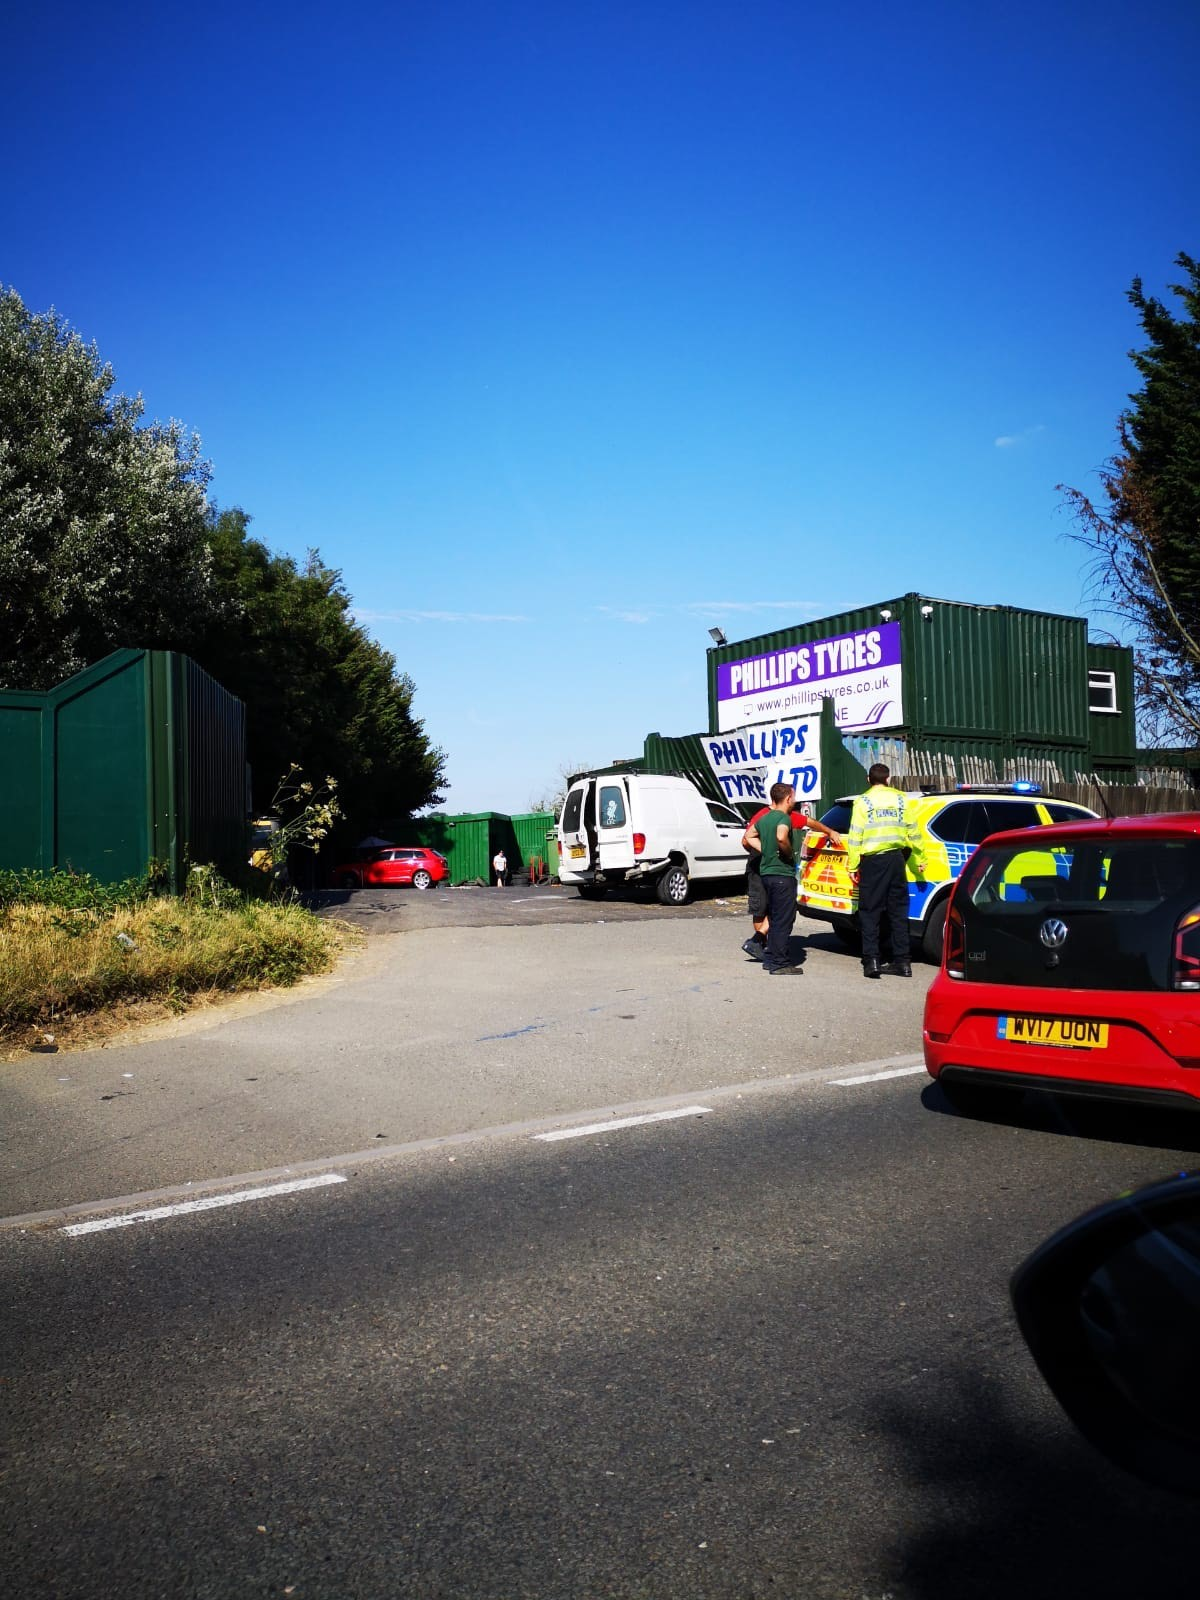 Delays on the A40 following multi-vehicle crash. Picture: Mark Rodgers